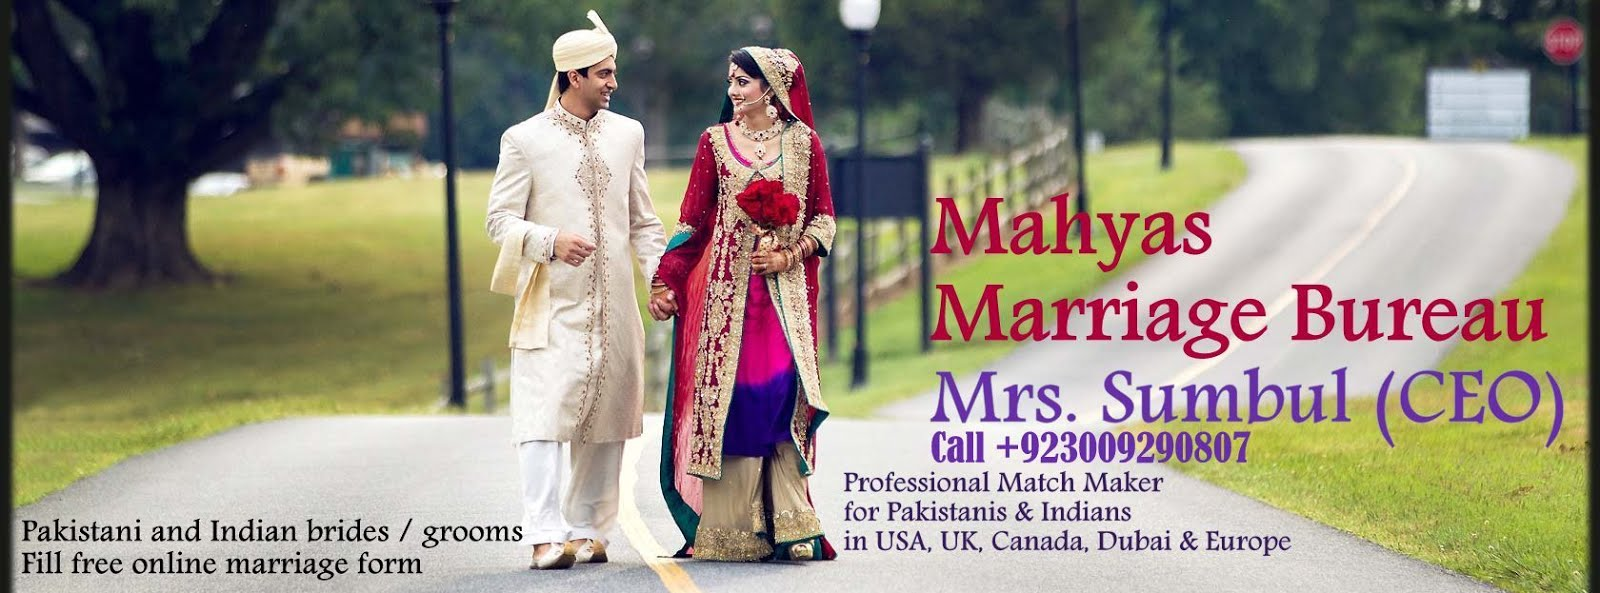 islamic dating sites in usa